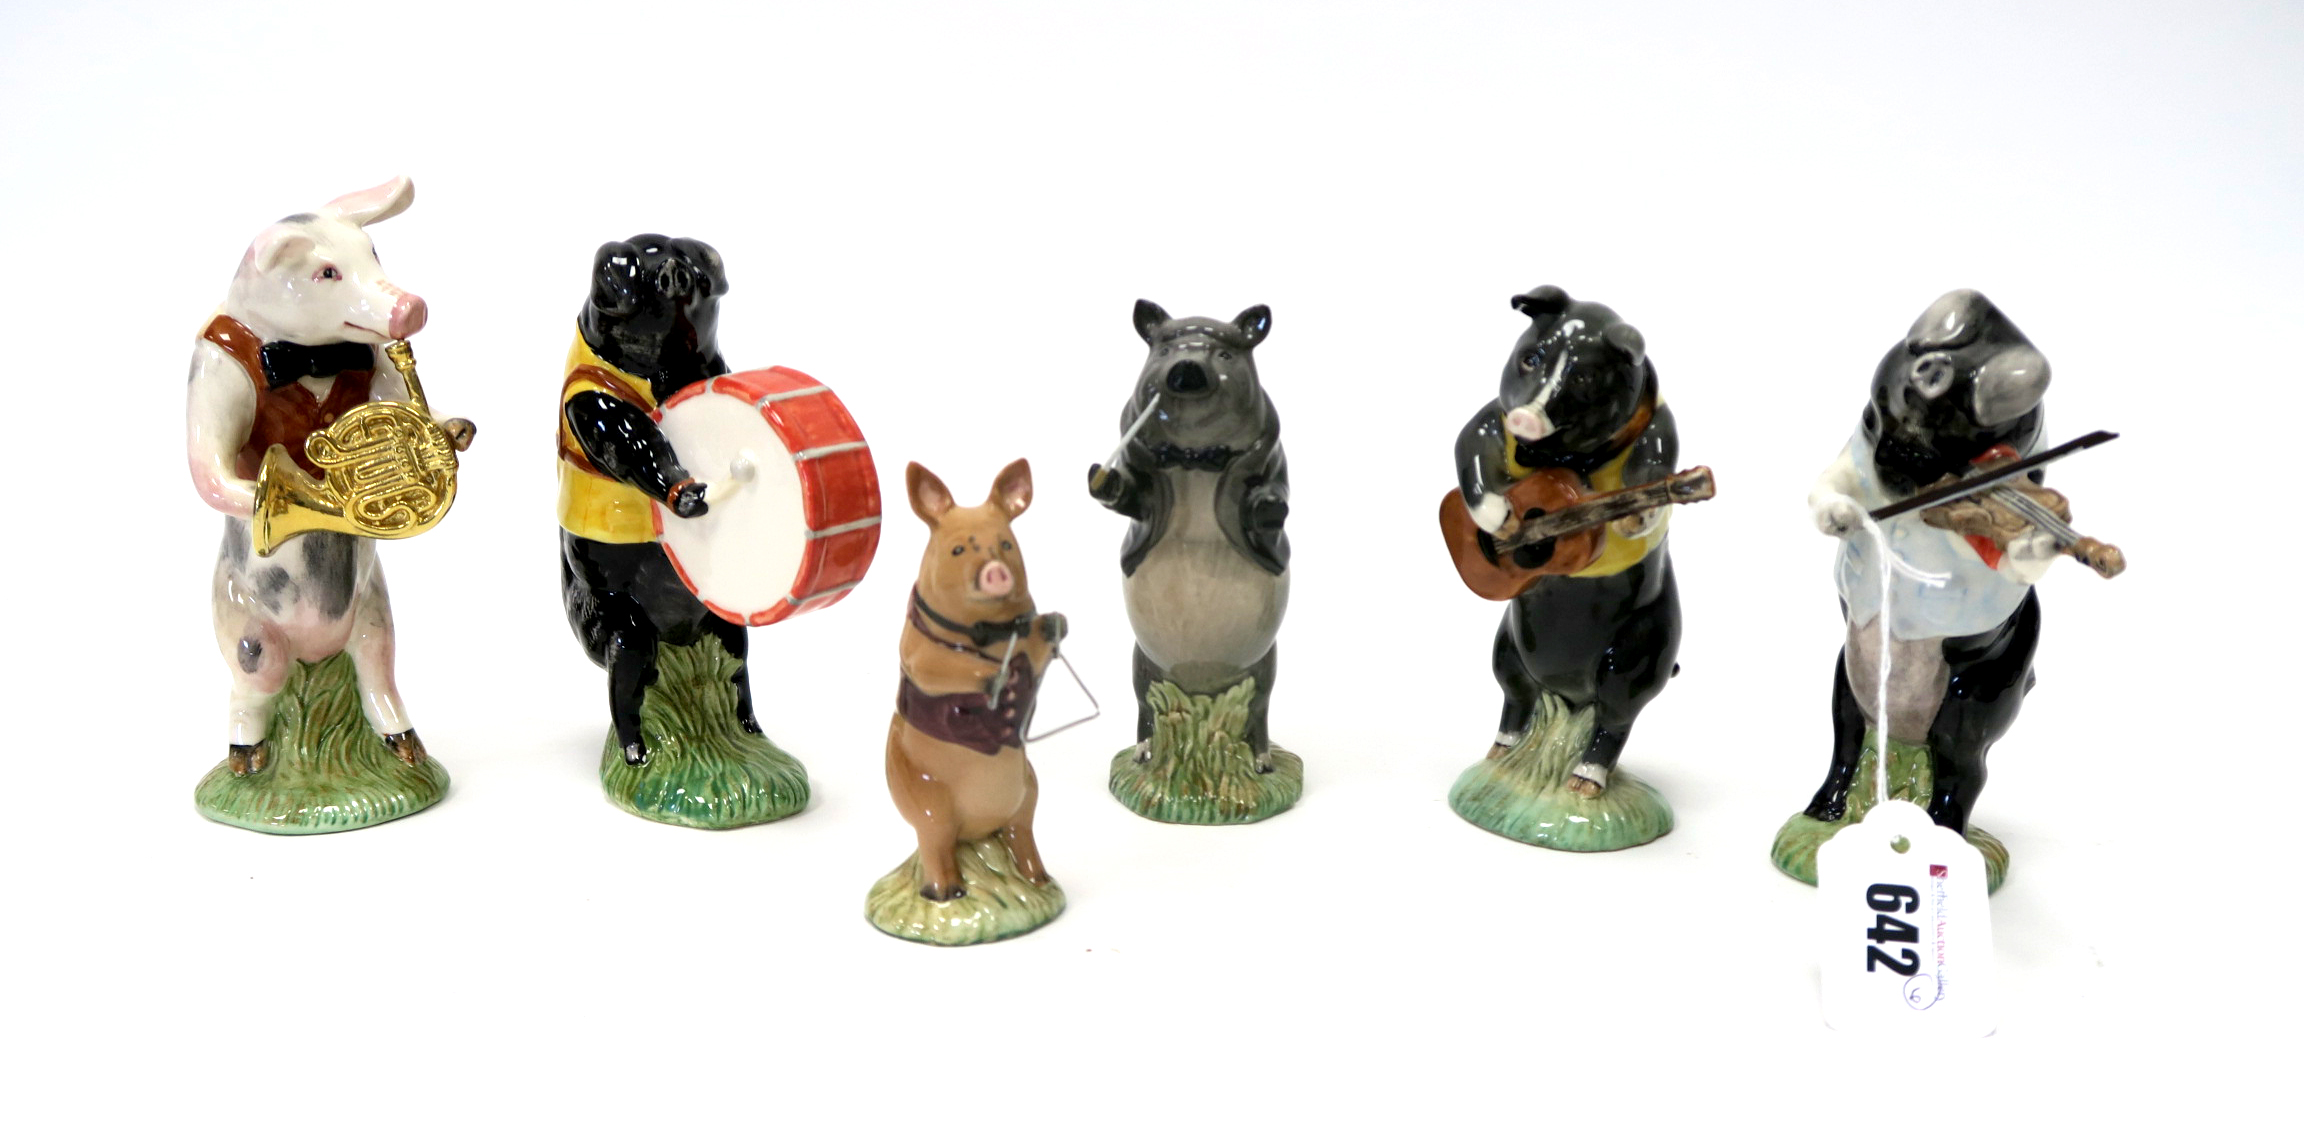 Lot 642 - Six Beswick Pottery Promenade Pig Band Figures, Michael, John, Richard, Christopher, Daniel and